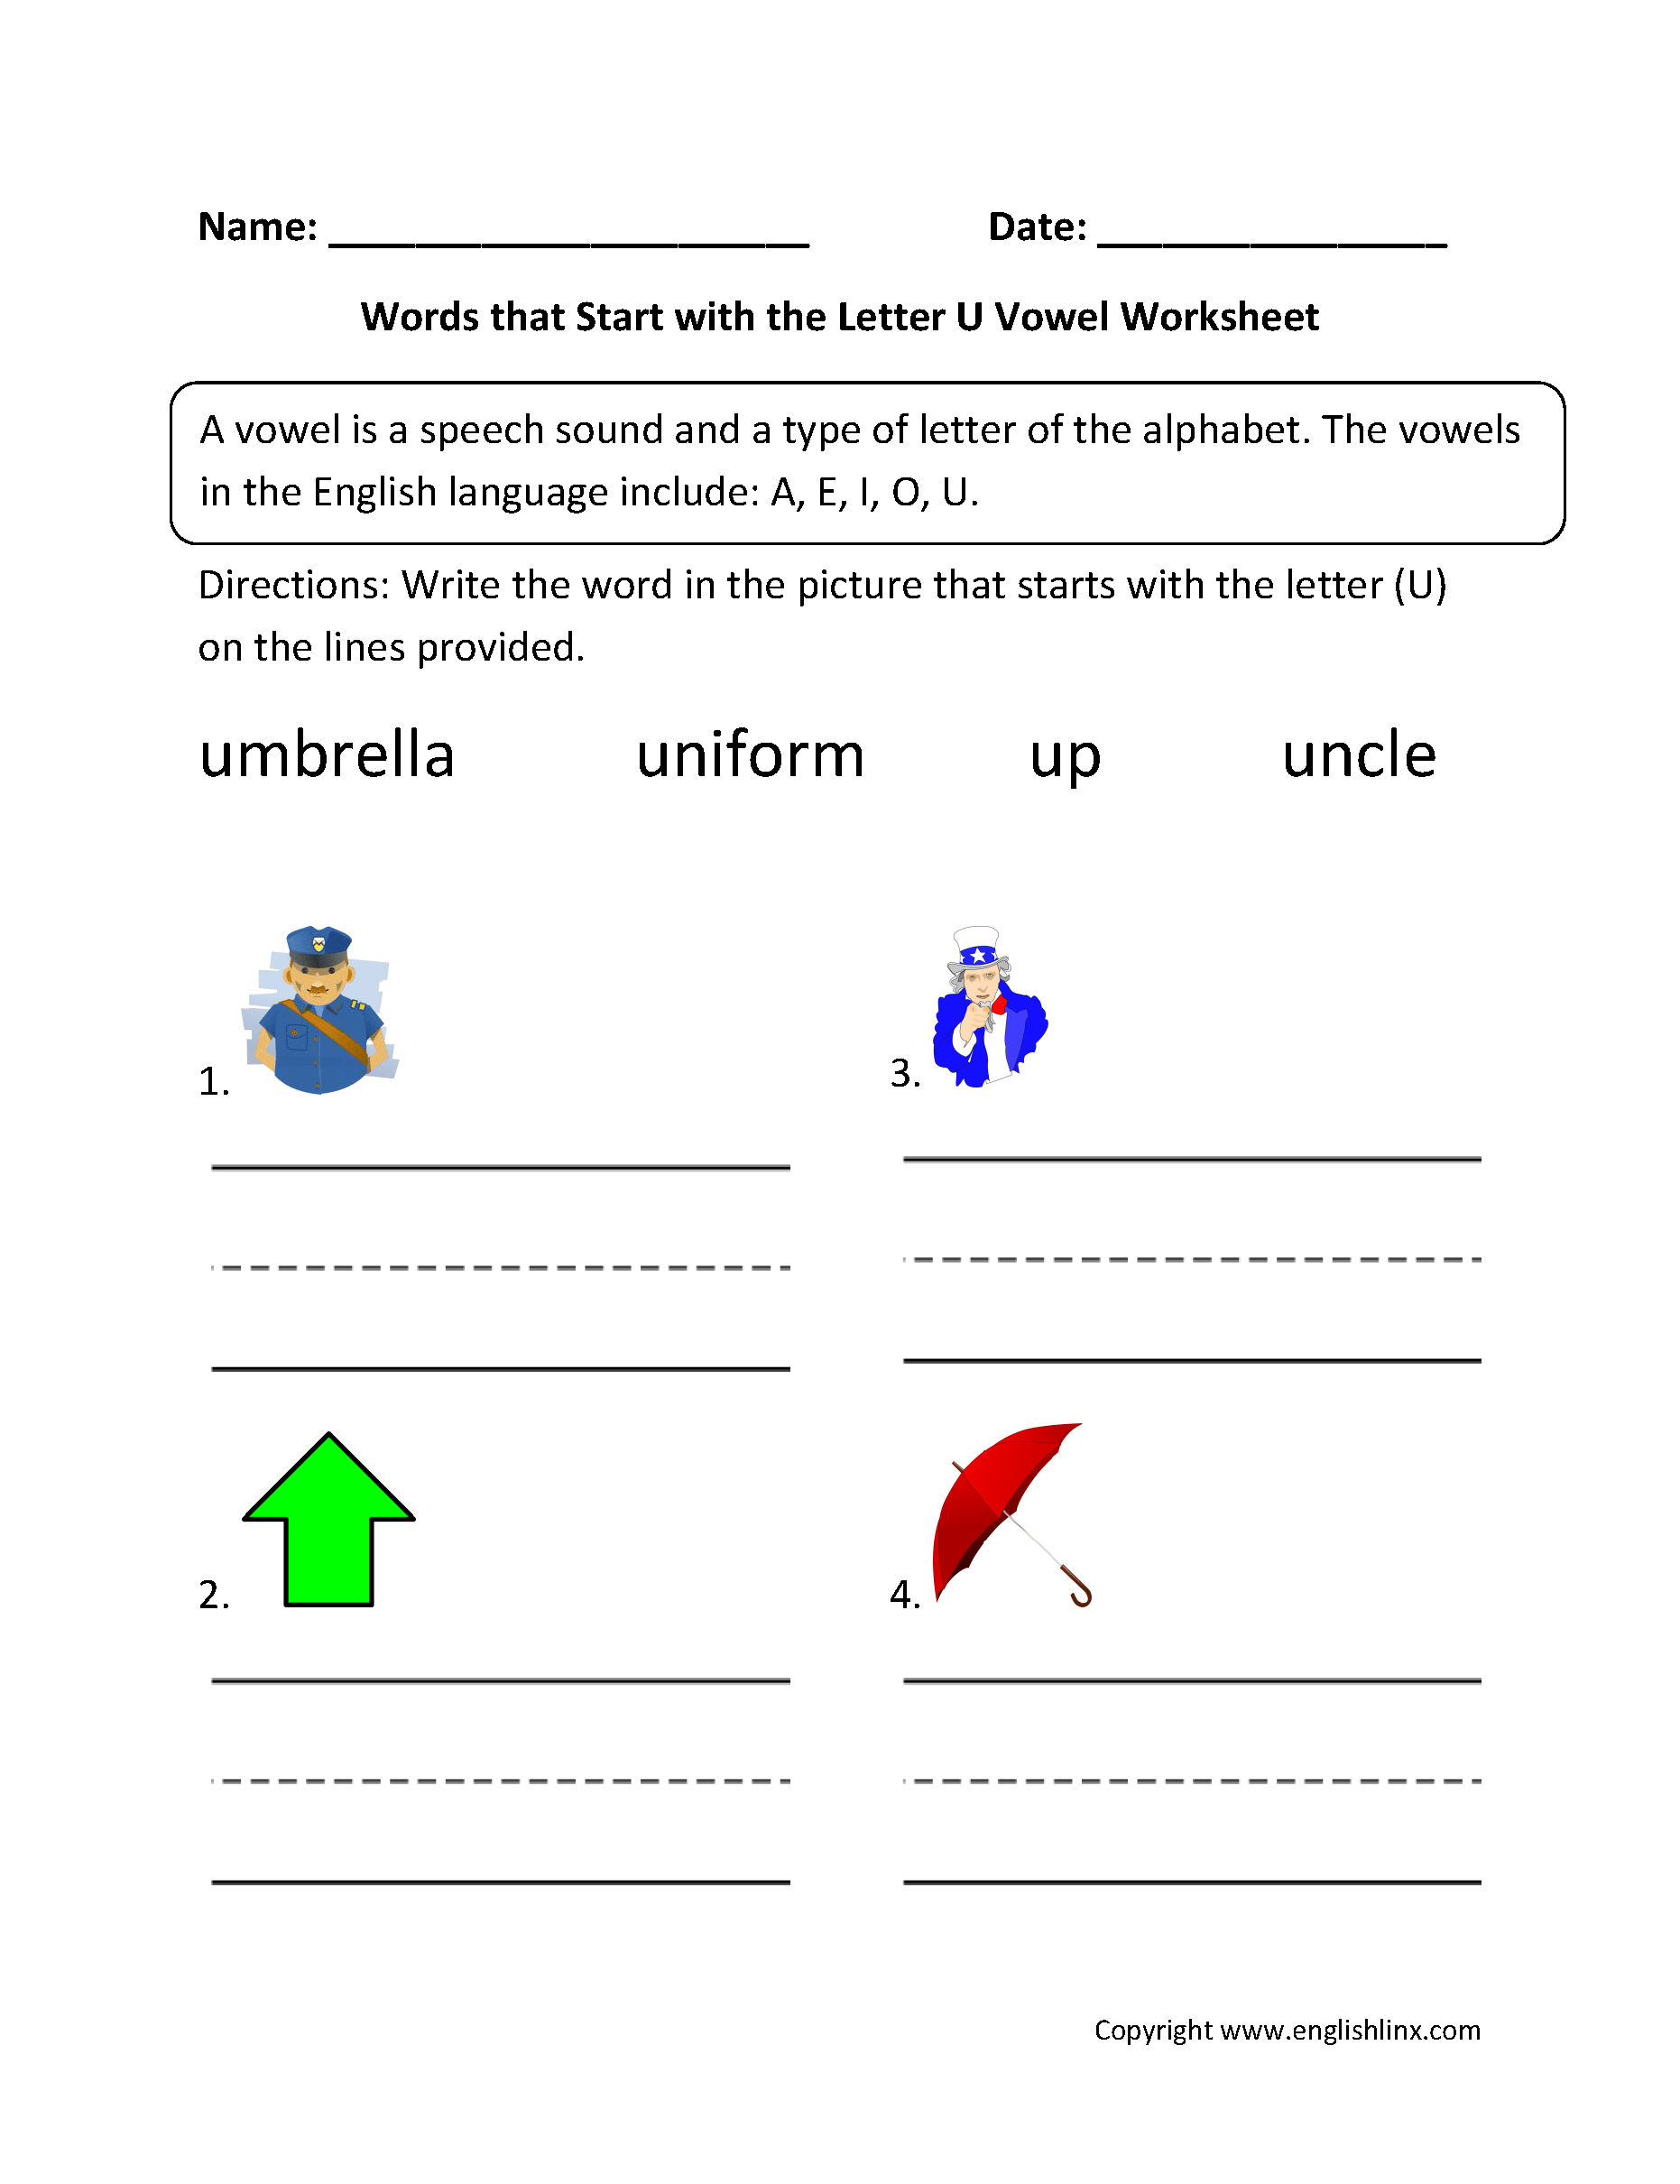 Words Start Letter U Vowel Worksheets Brayden